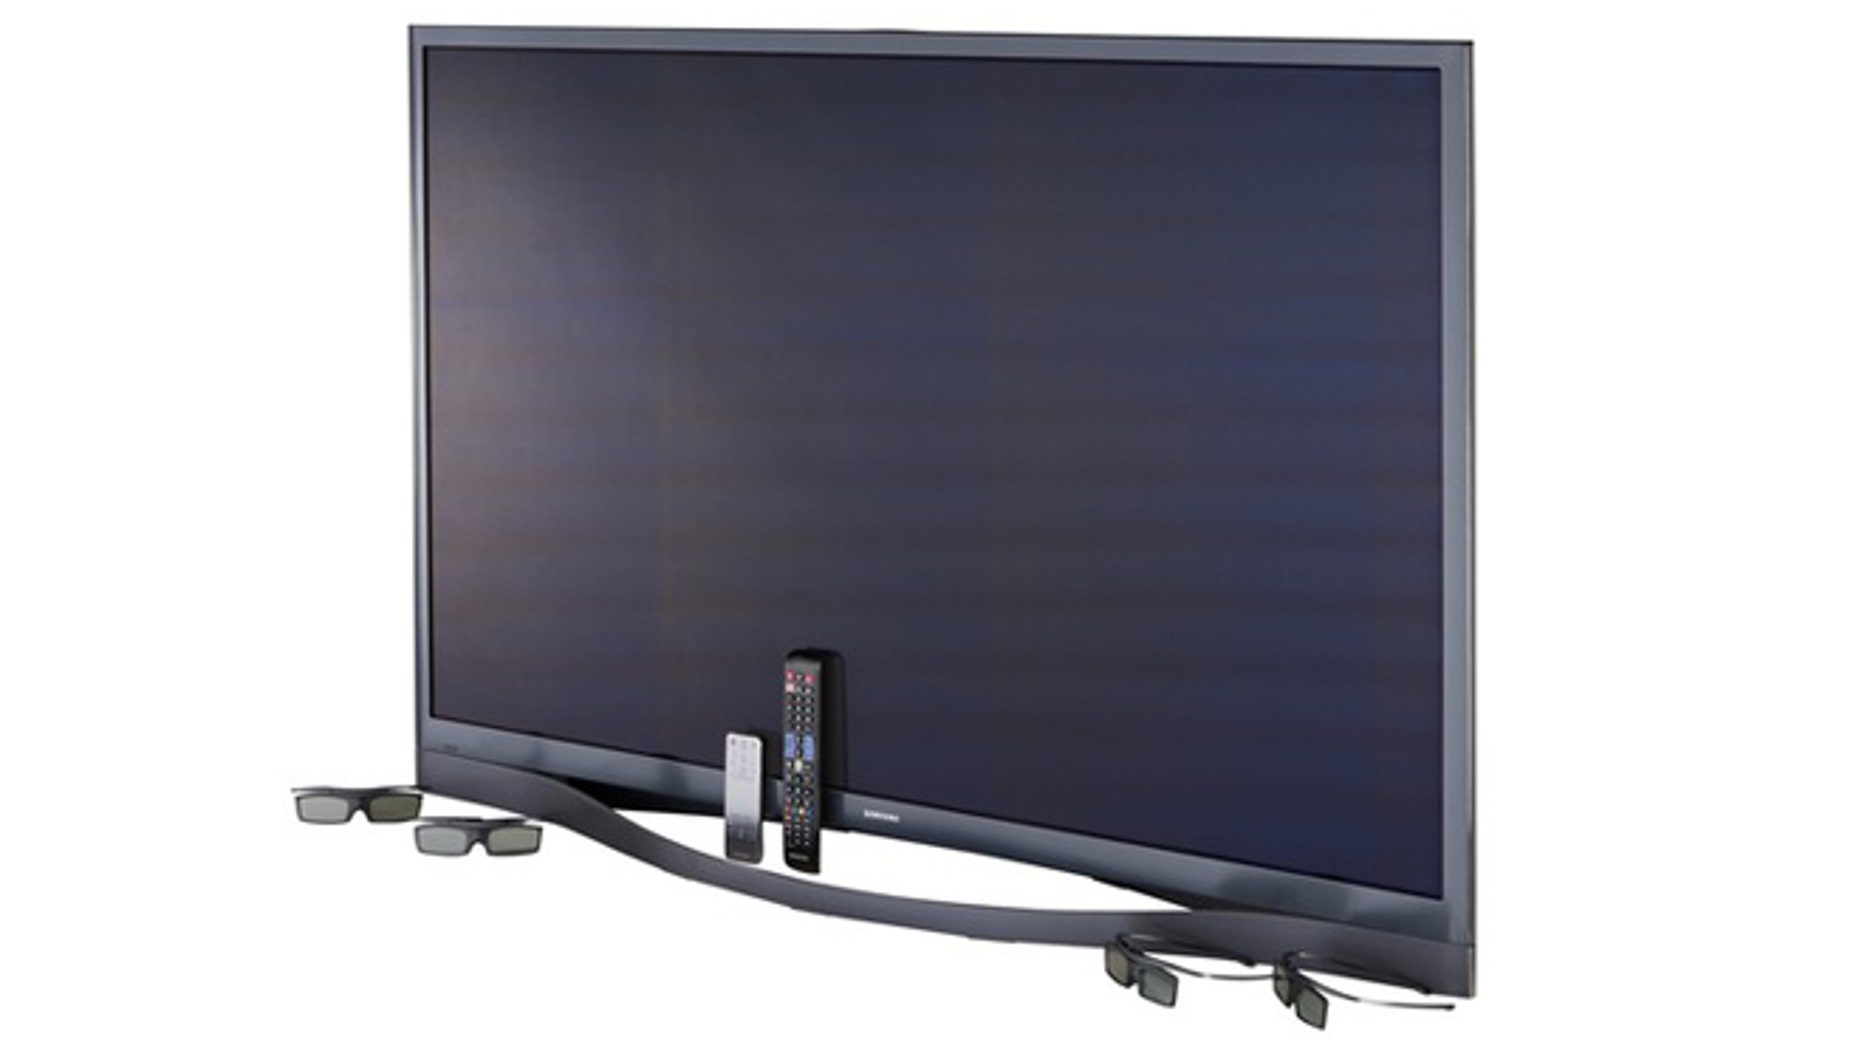 A 60-inch 3D-capable plasma HDTV from Samsung with 1080p resolution, 4 HDMI inputs, and 1 component-video input.